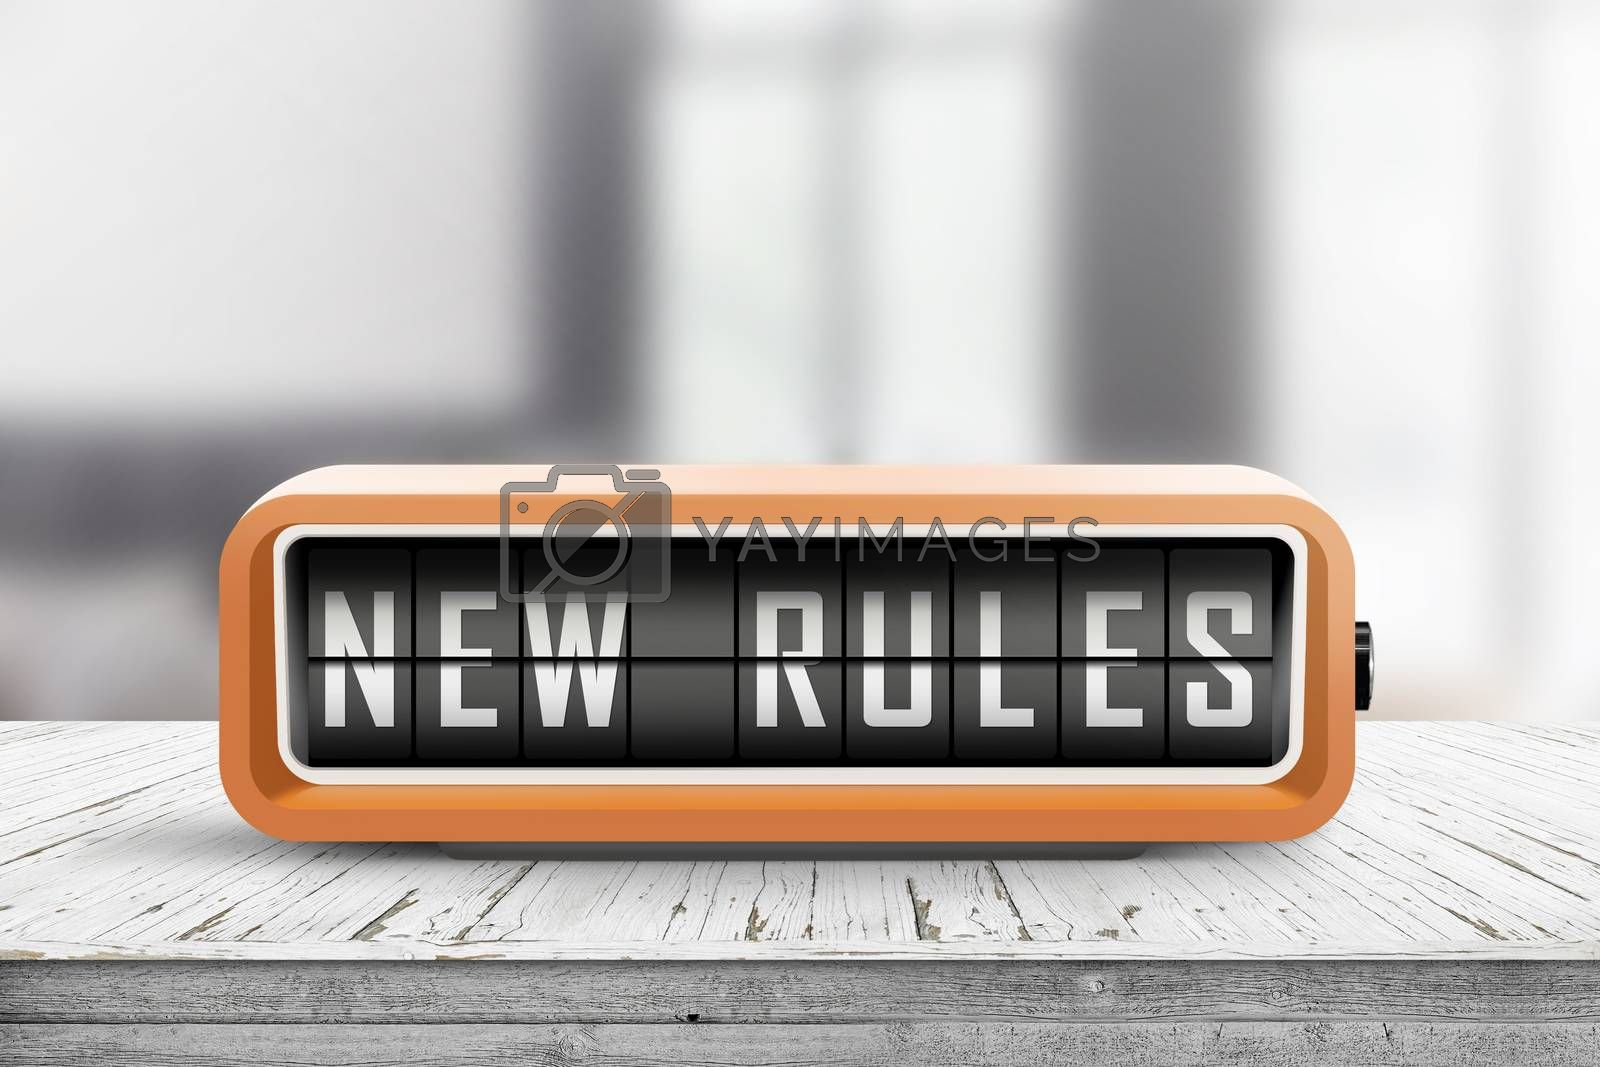 New rules alarm message on a wooden desk in a bright indoor environment